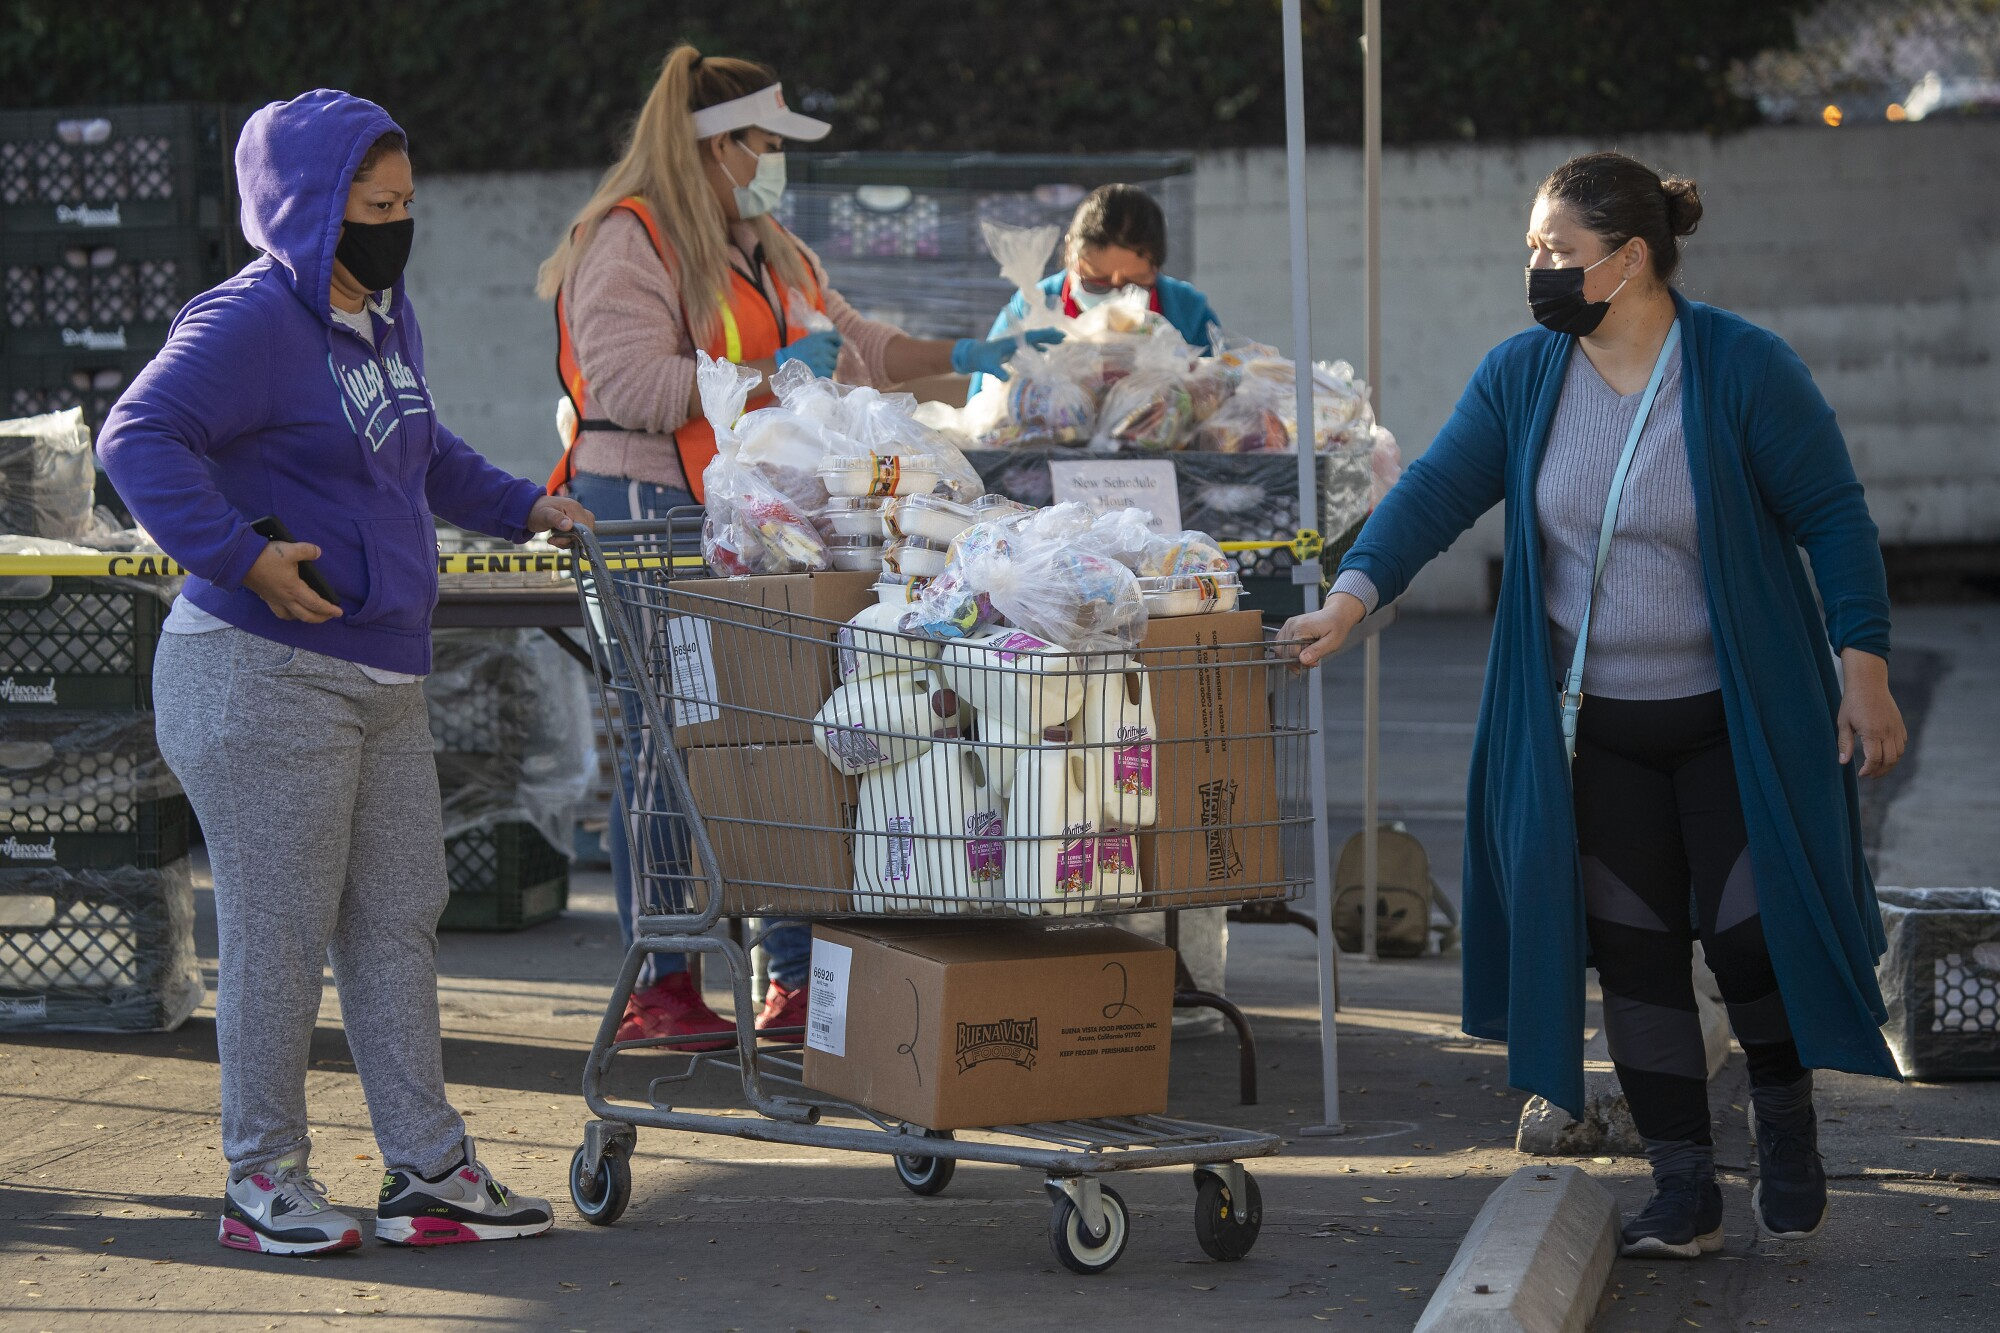 People stand in line with carts full of food at a school parking lot